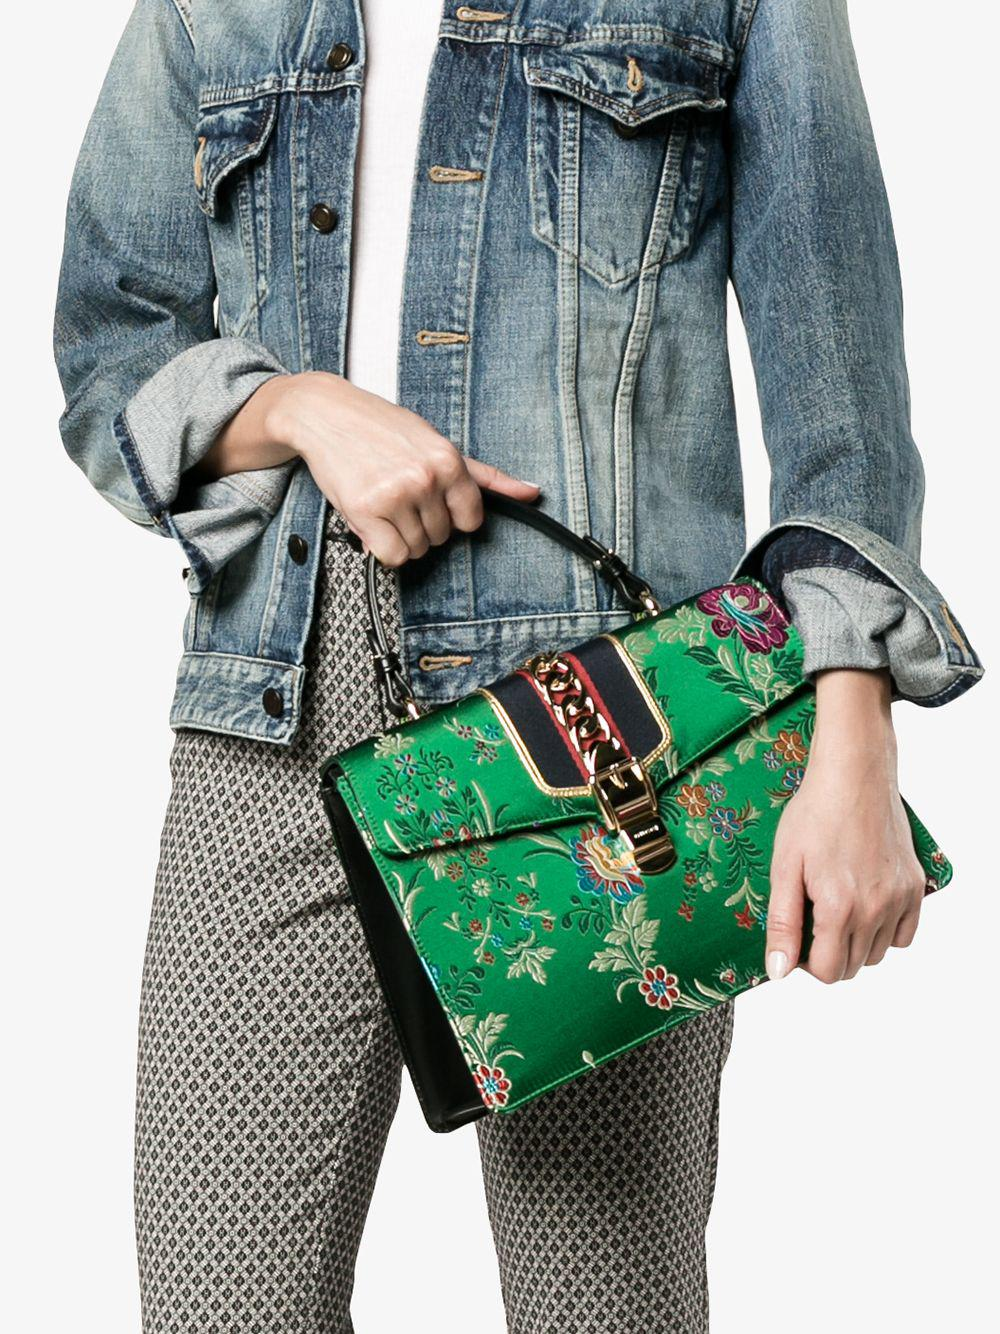 e2dfb51cd35b Lyst - Gucci Medium Sylvie Floral Print Bag With Top Handle in Green - Save  7%